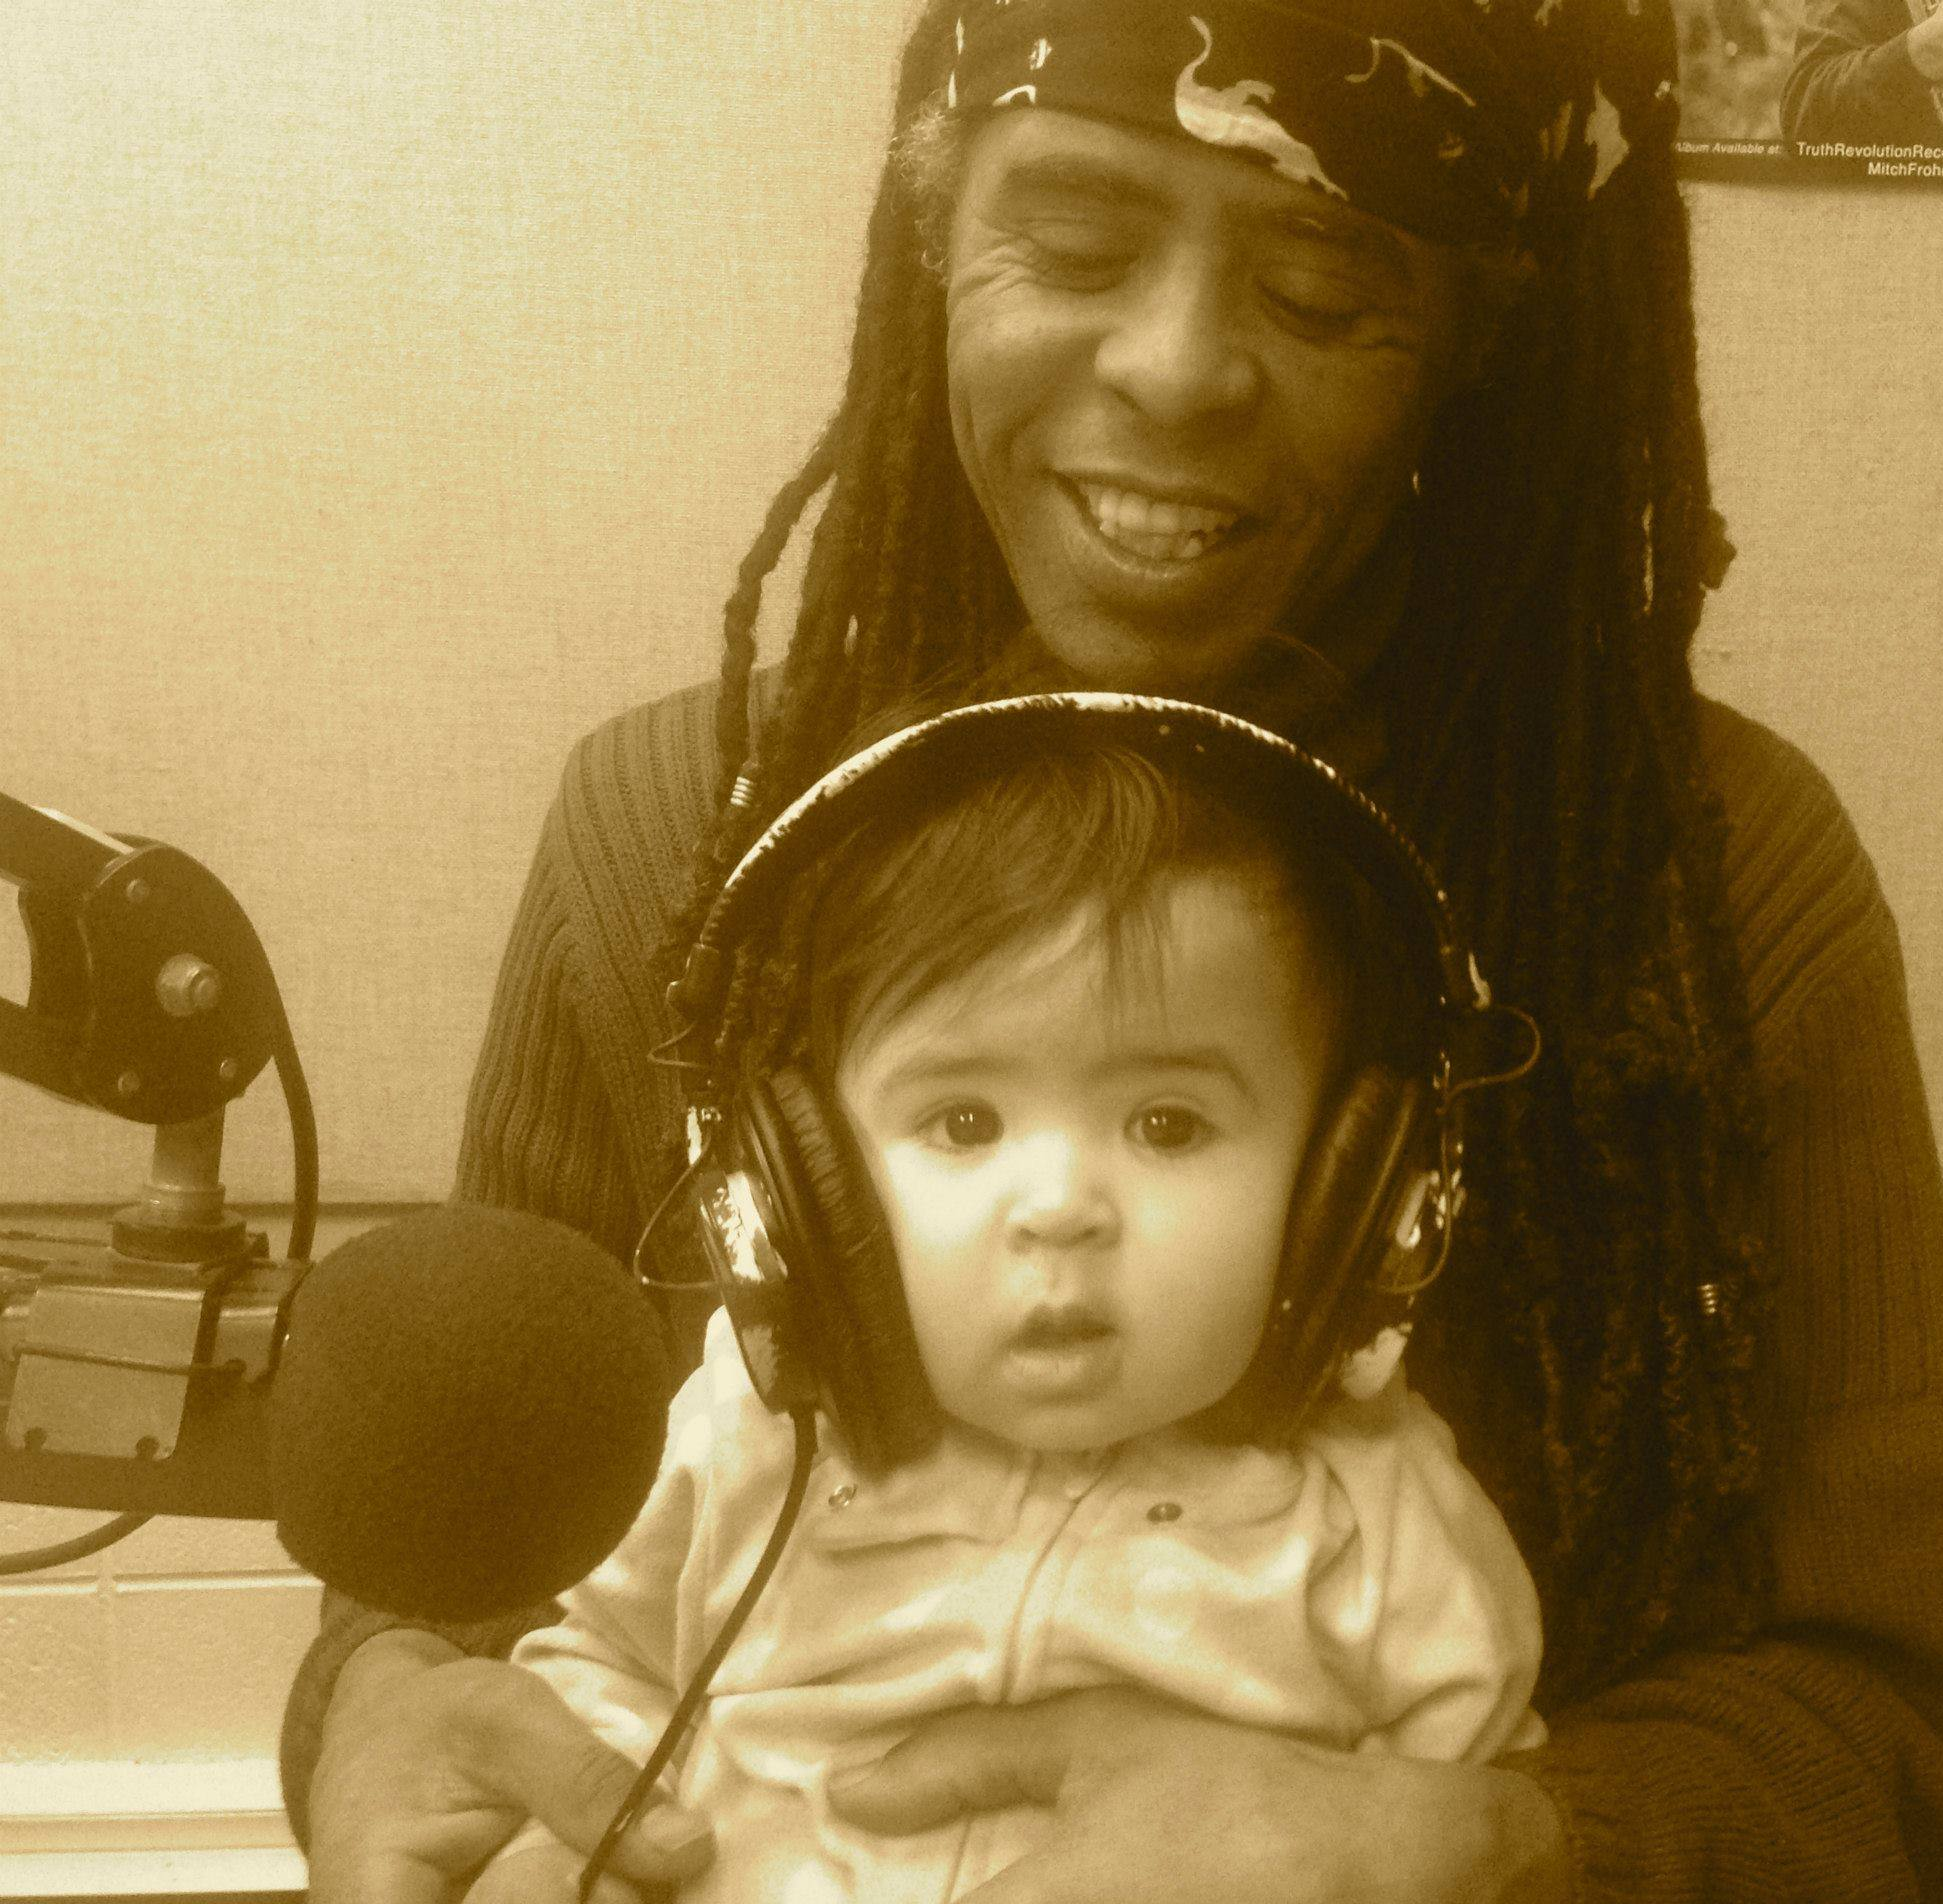 Hakmoun at WKCR, with his daughter Aya.